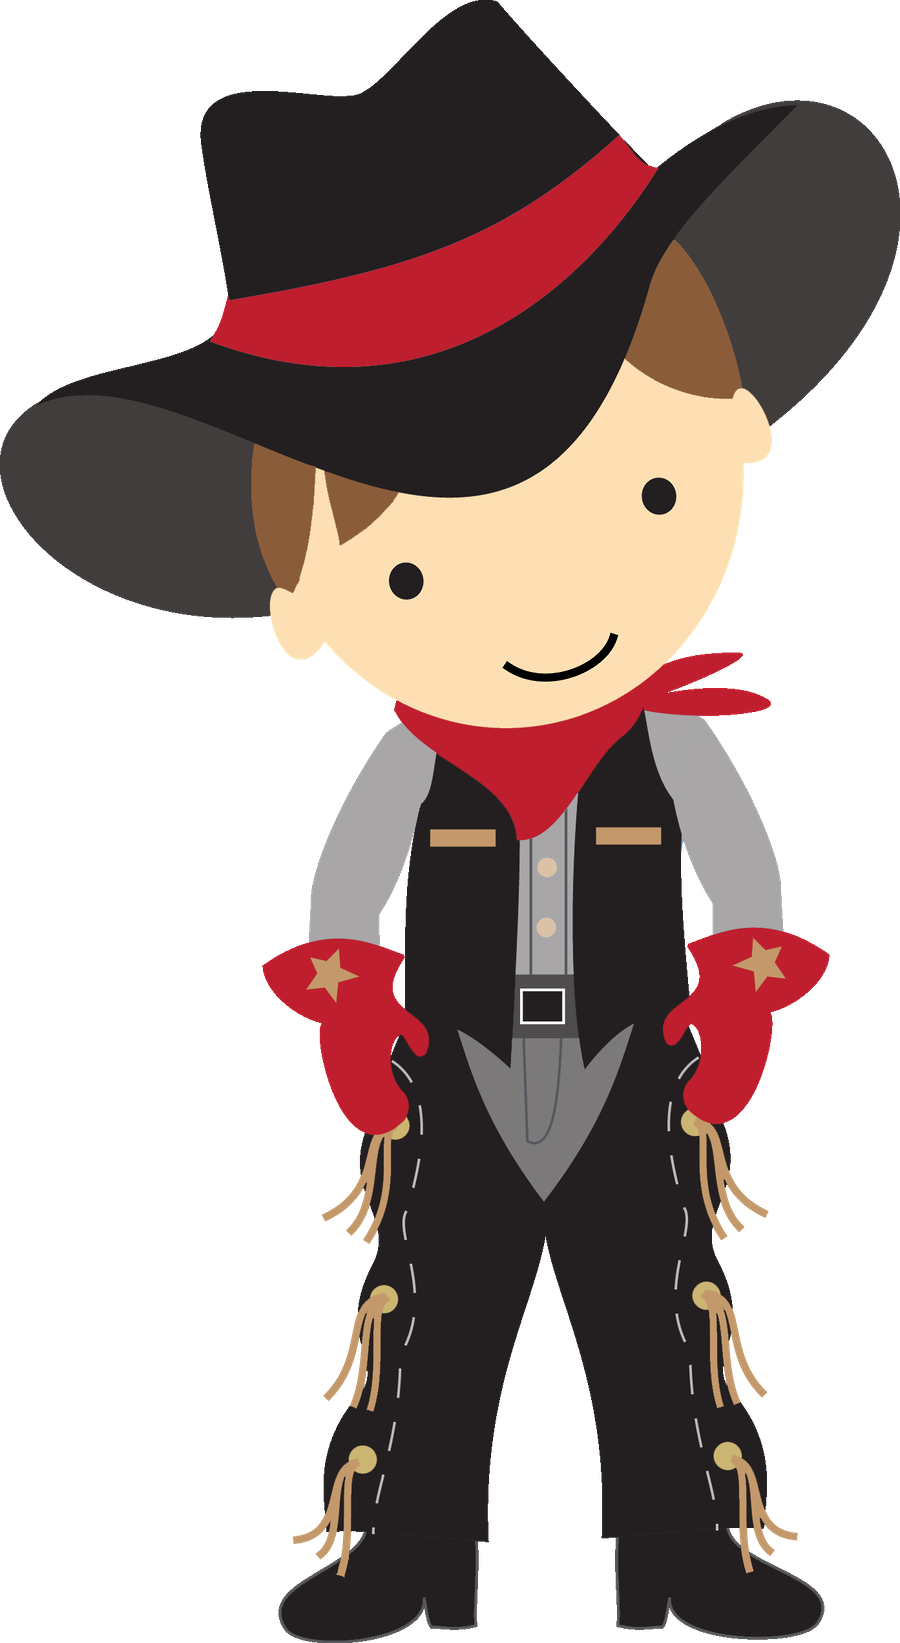 Crown bearers clipart red and black border vector transparent download COWBOY CLIP ART | Clip Art | Pinterest | Cowboys, Clip art and Scrap vector transparent download